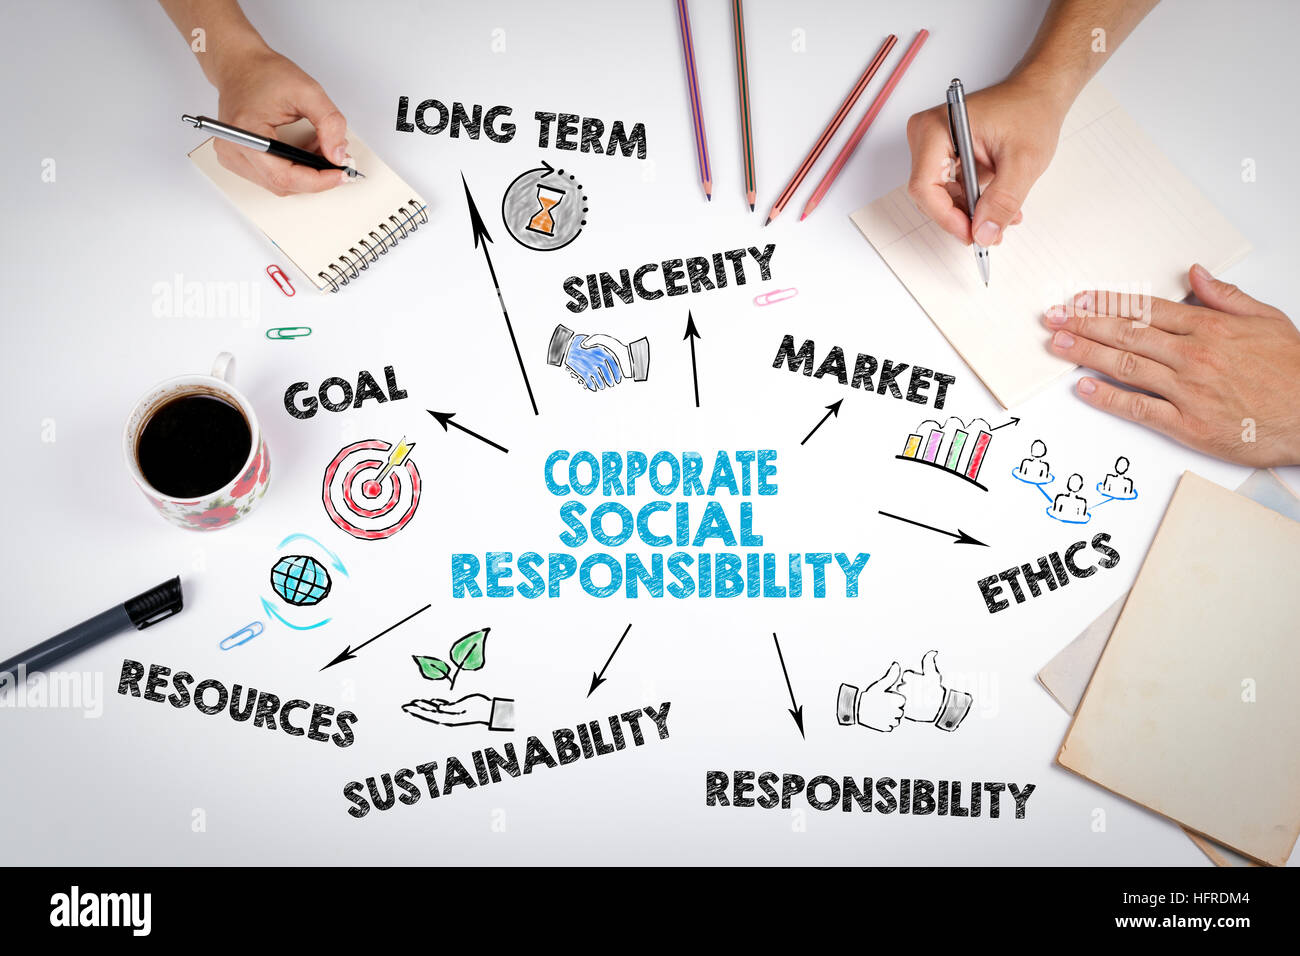 Corporate Social Responsibility Concept. The meeting at the white office table. - Stock Image